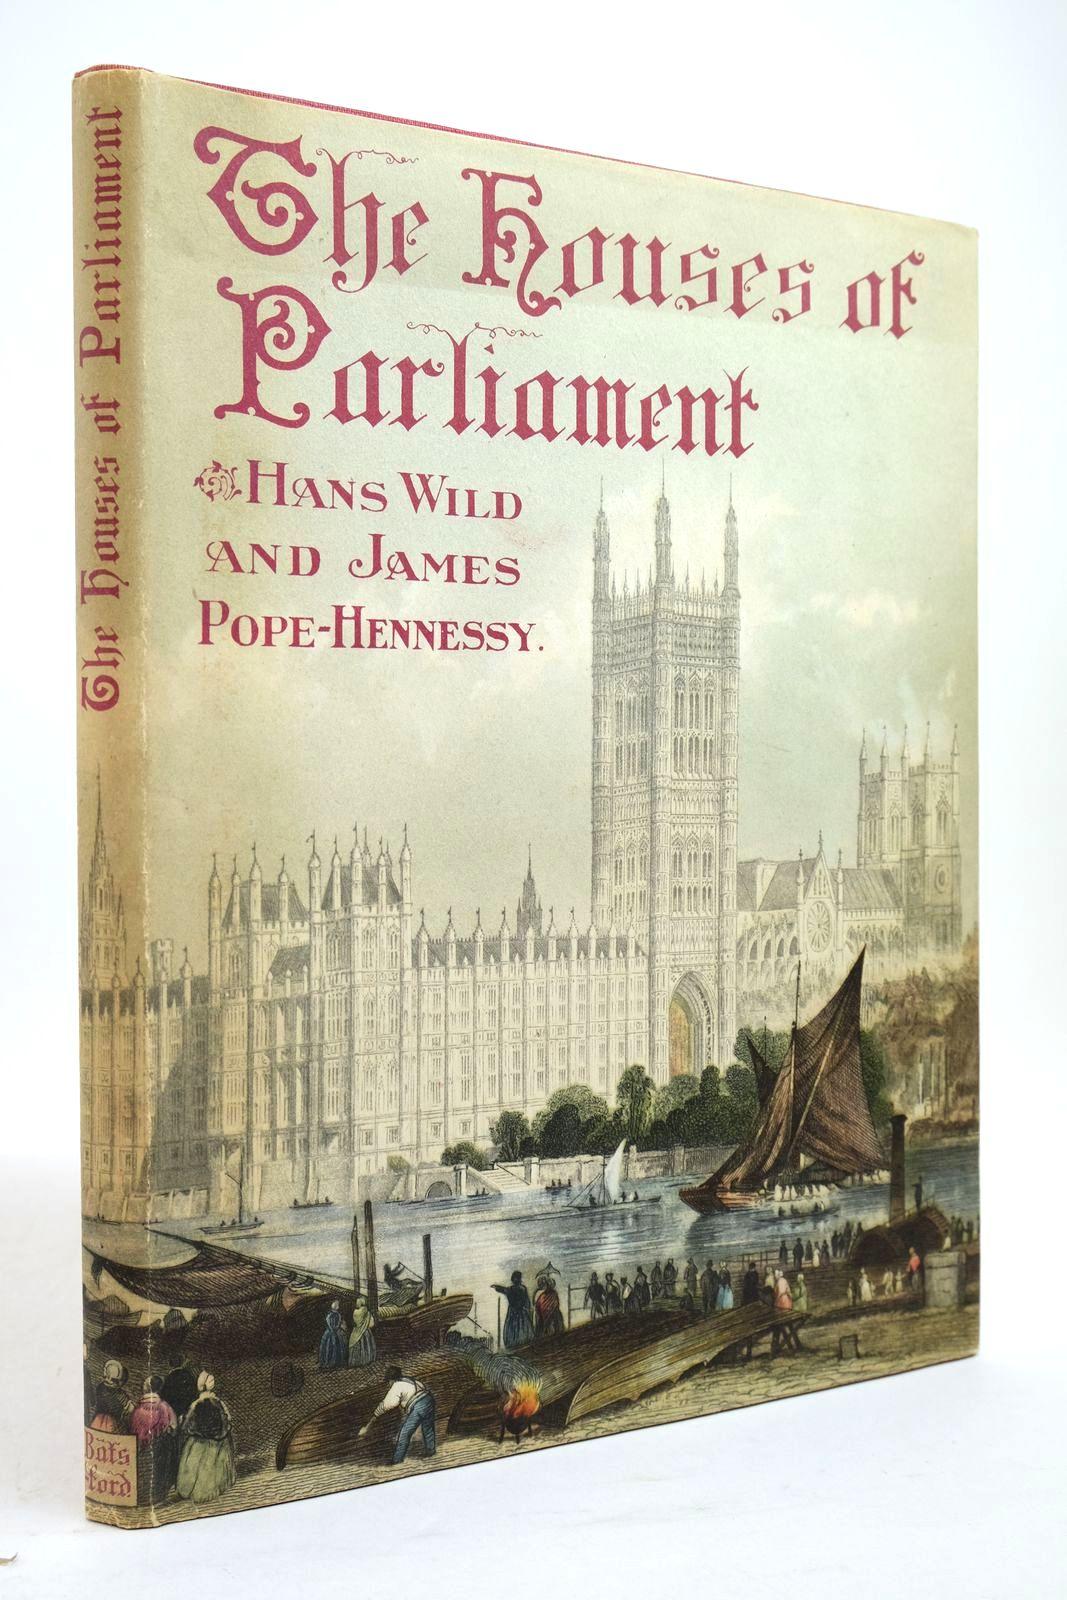 Photo of THE HOUSES OF PARLIAMENT- Stock Number: 2134772